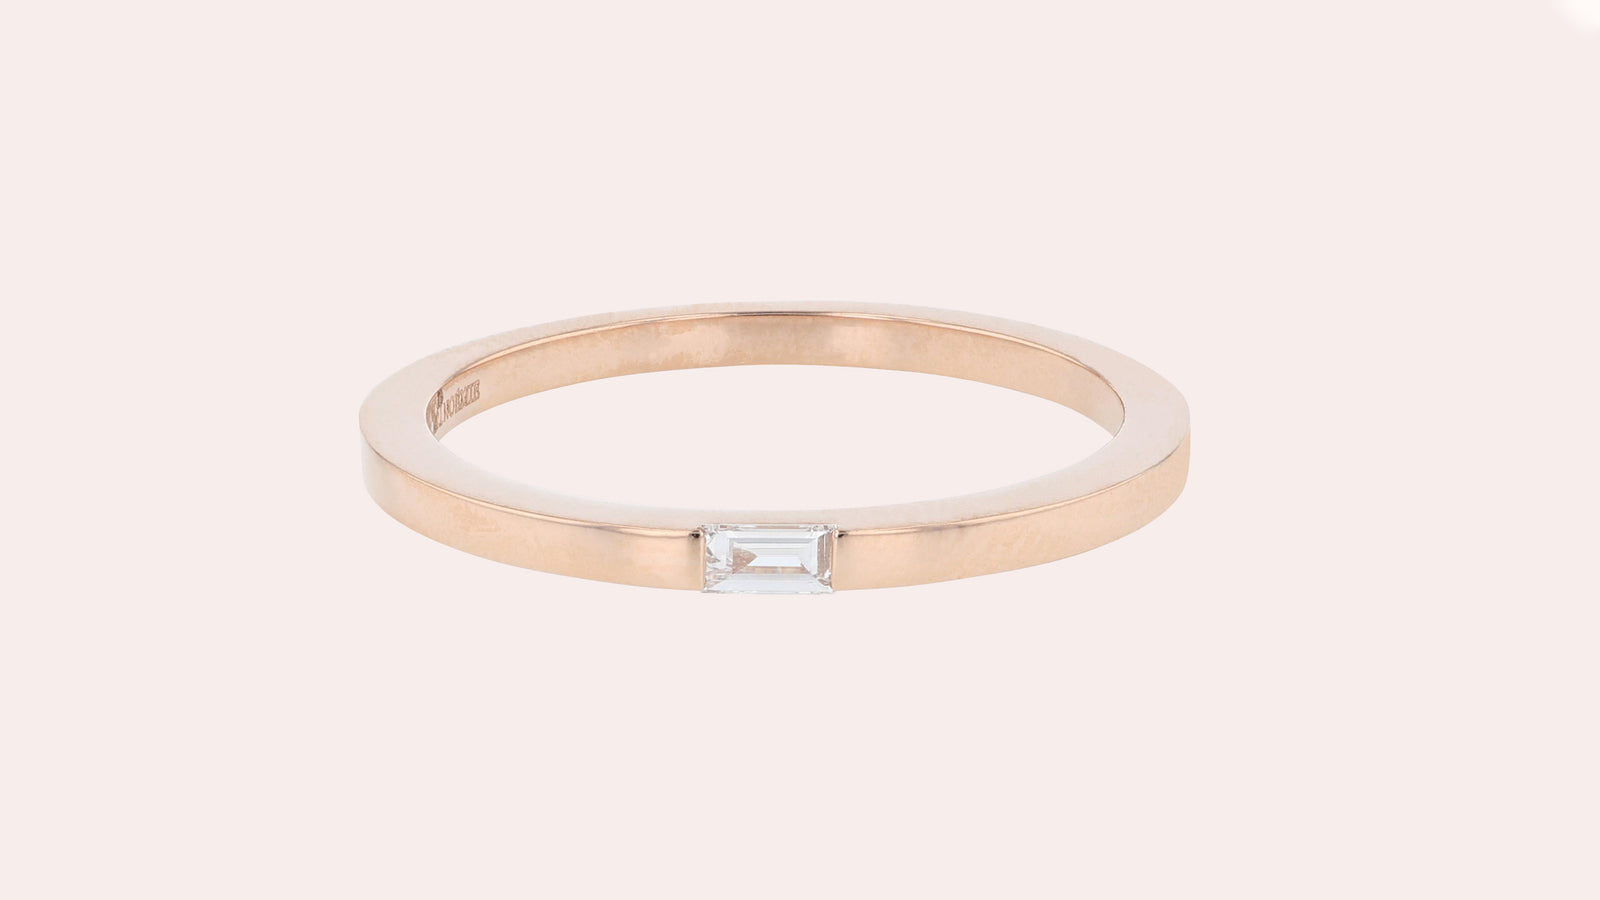 The Single Baguette Ring